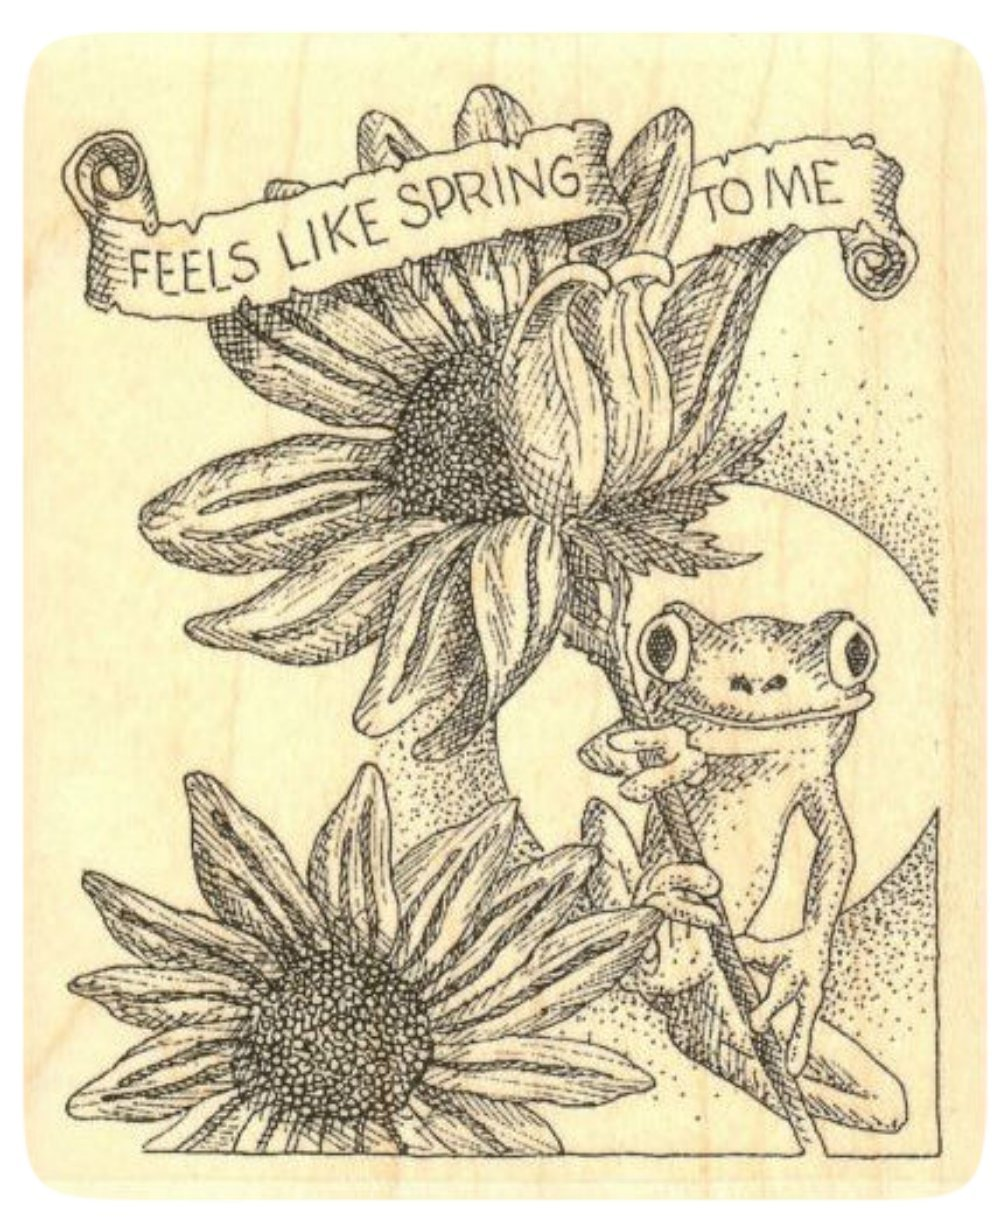 {Single Count} Unique & Custom (3 1/2'' by 4 1/4'' Inches) ''Feels Like Spring To Me Text, Sunflowers & Frog Scene'' Rectangle Shaped Genuine Wood Mounted Rubber Inking Stamp by mySimple Products